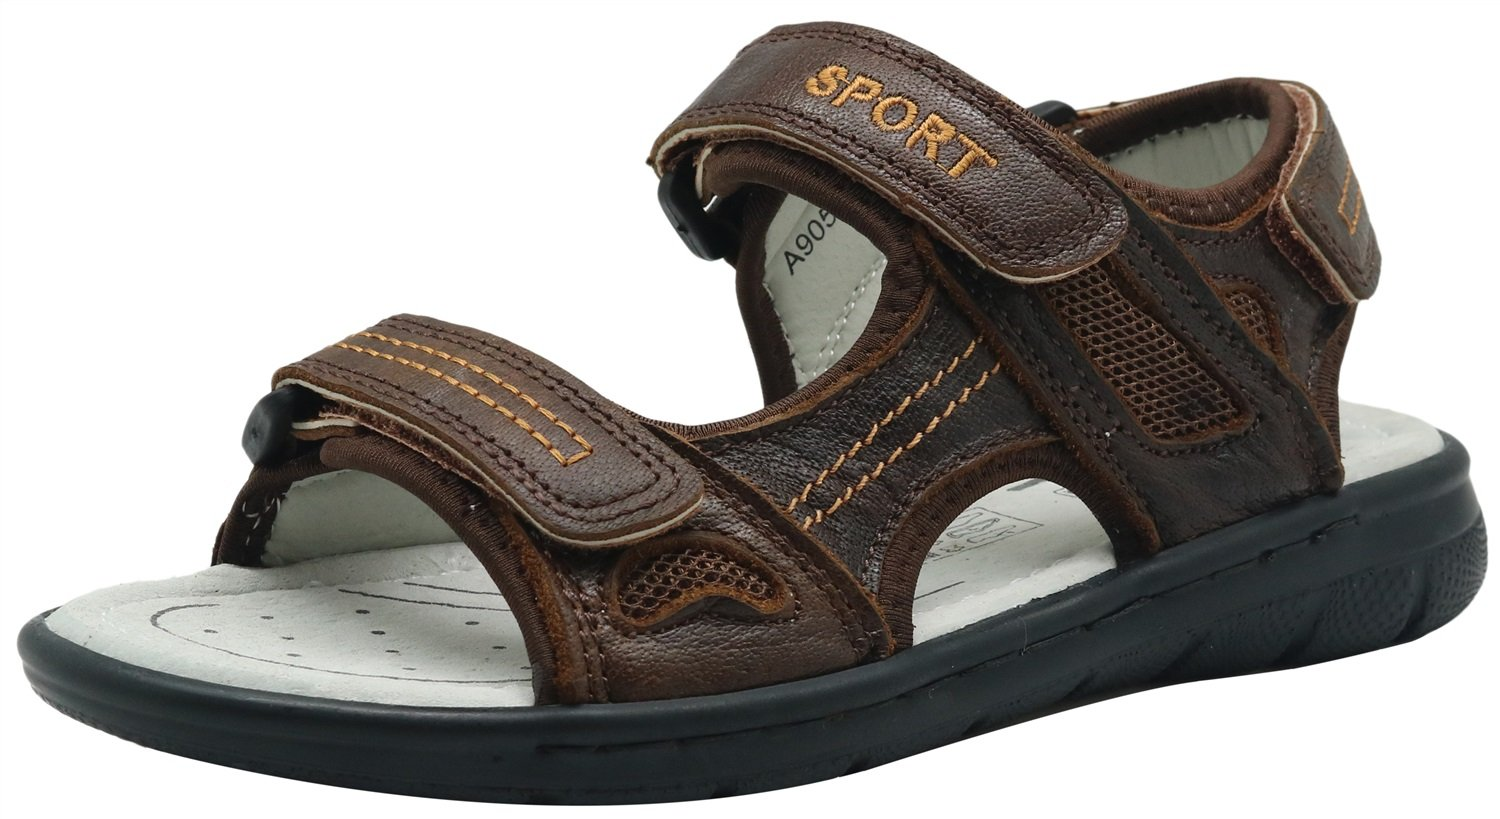 Little Kid//Big Kid Color : Brown , Size : 2.5 M US Little Kid Non-Slip Kids Boys Outdoor Shoes Leather Three-Strap Casual Sandal Durable